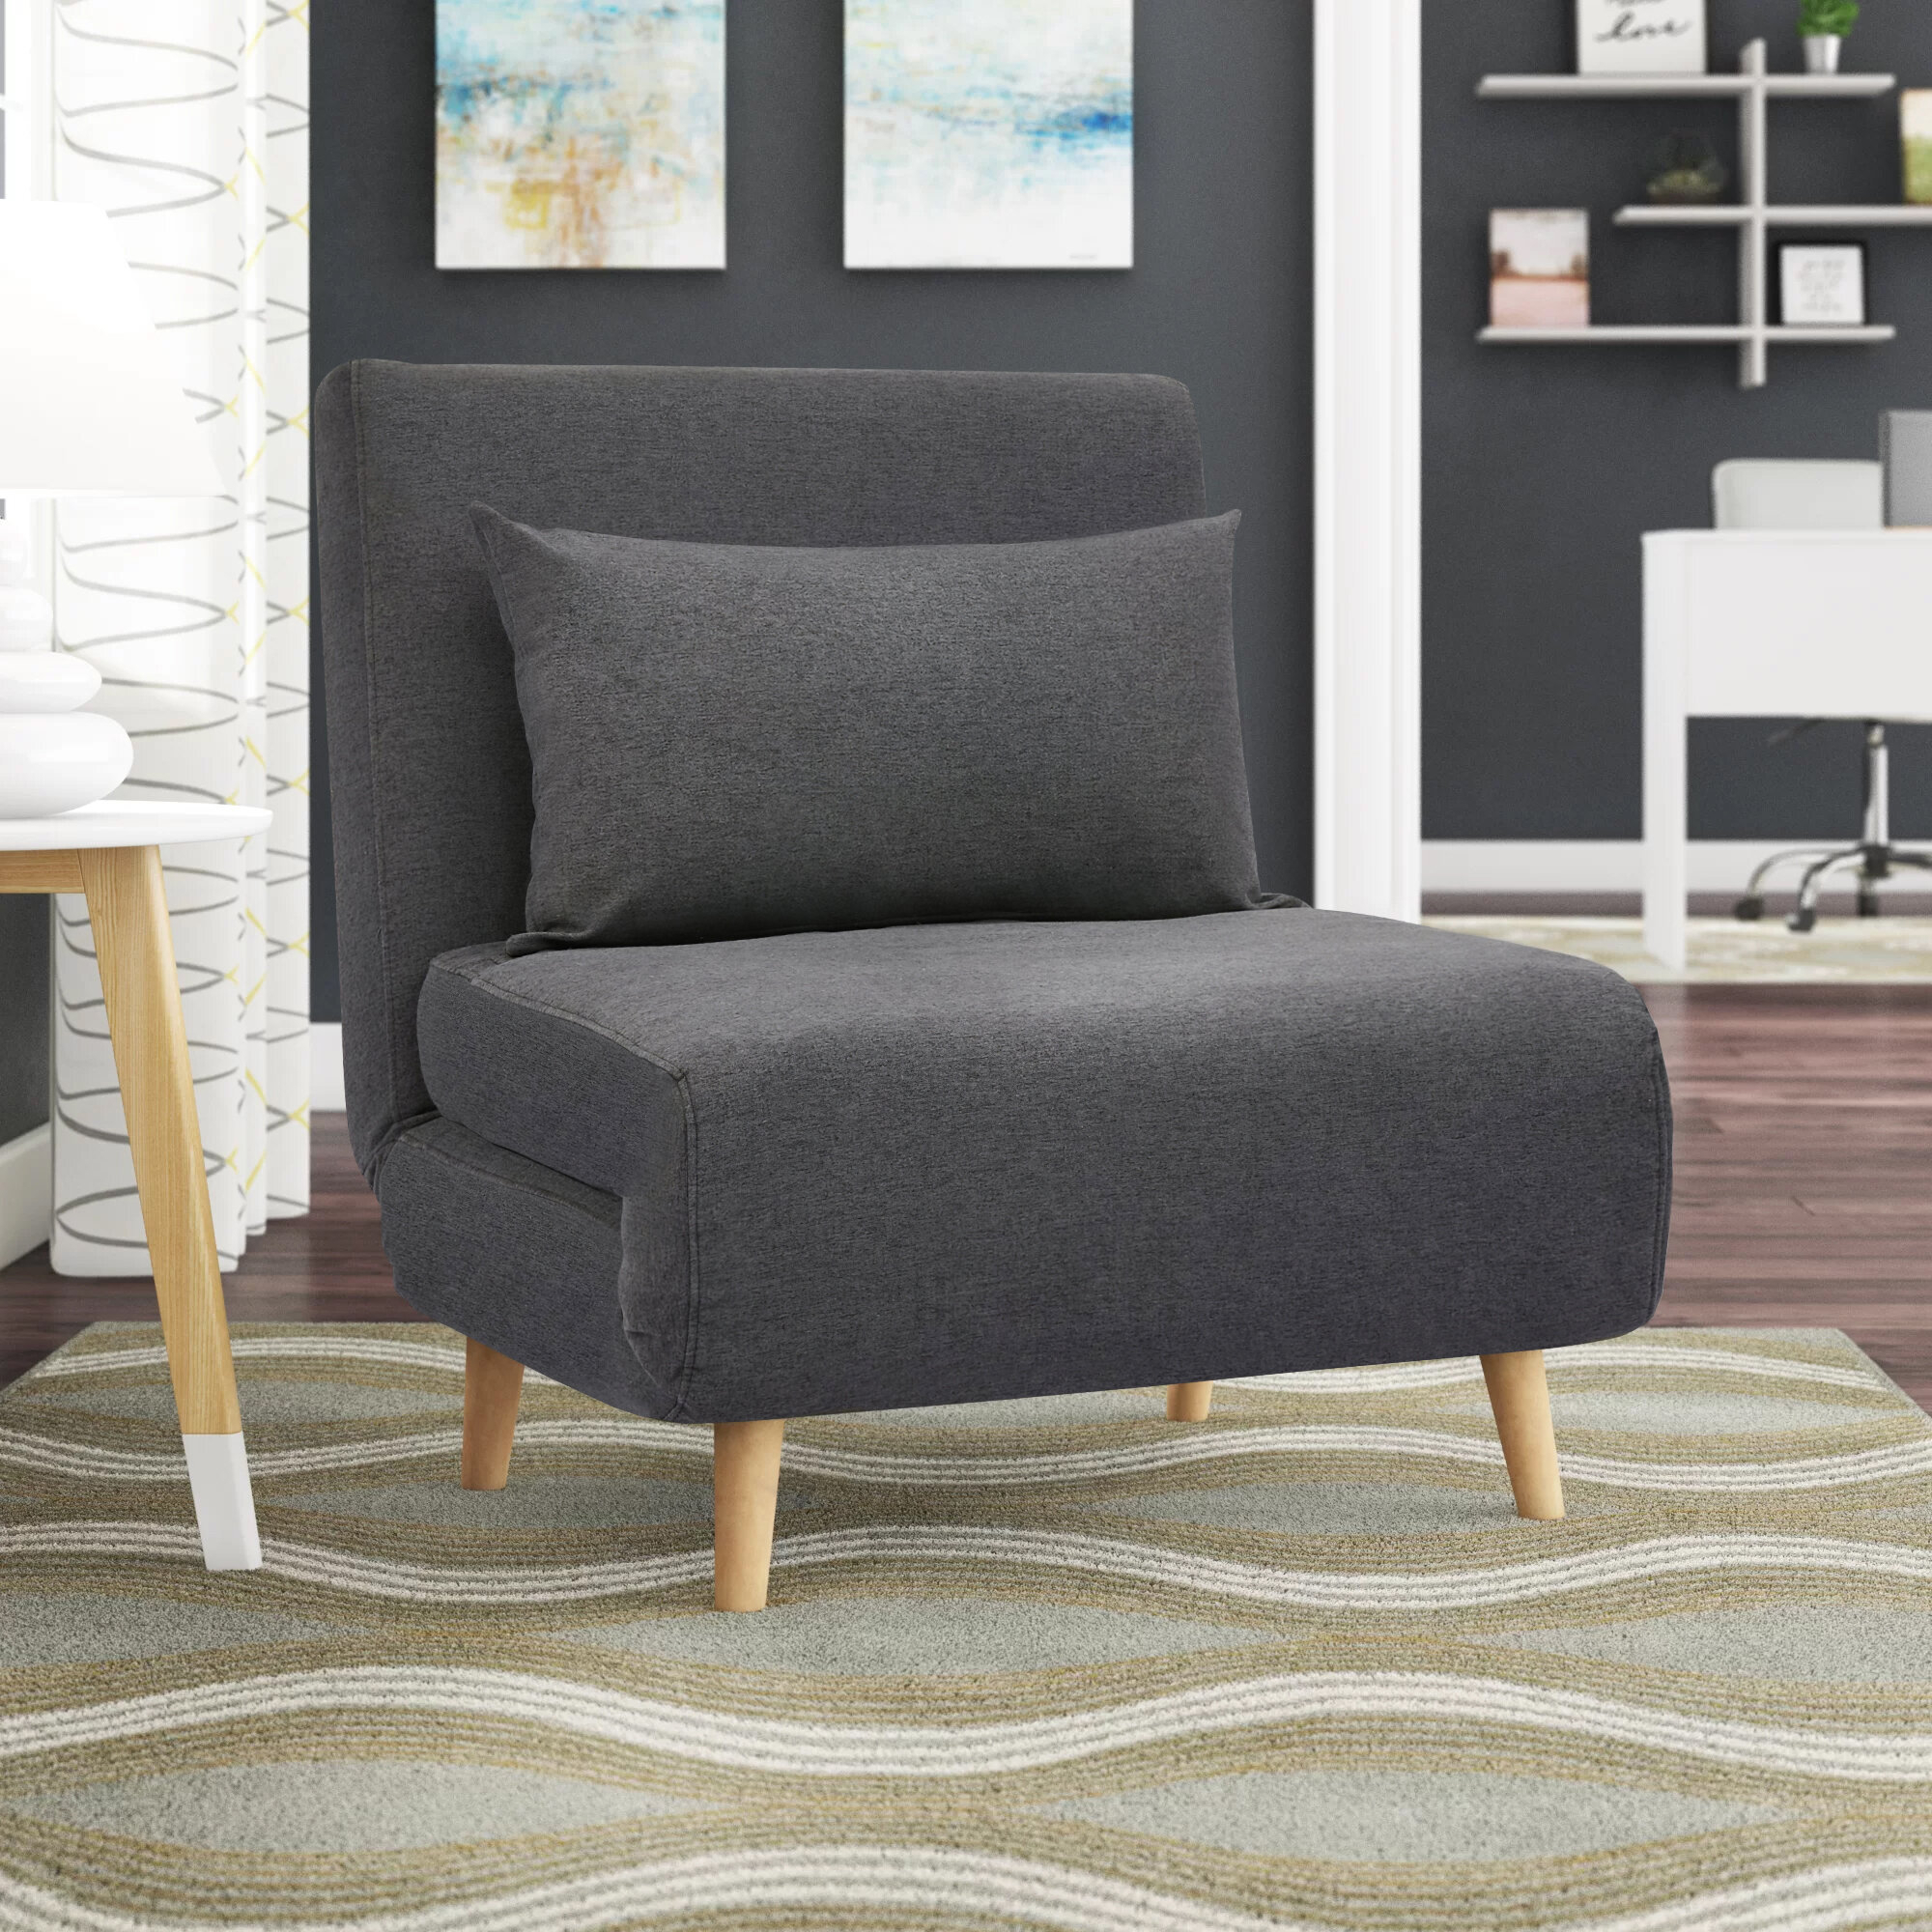 Convertible Chairs | Wayfair In New London Convertible Chairs (View 2 of 15)